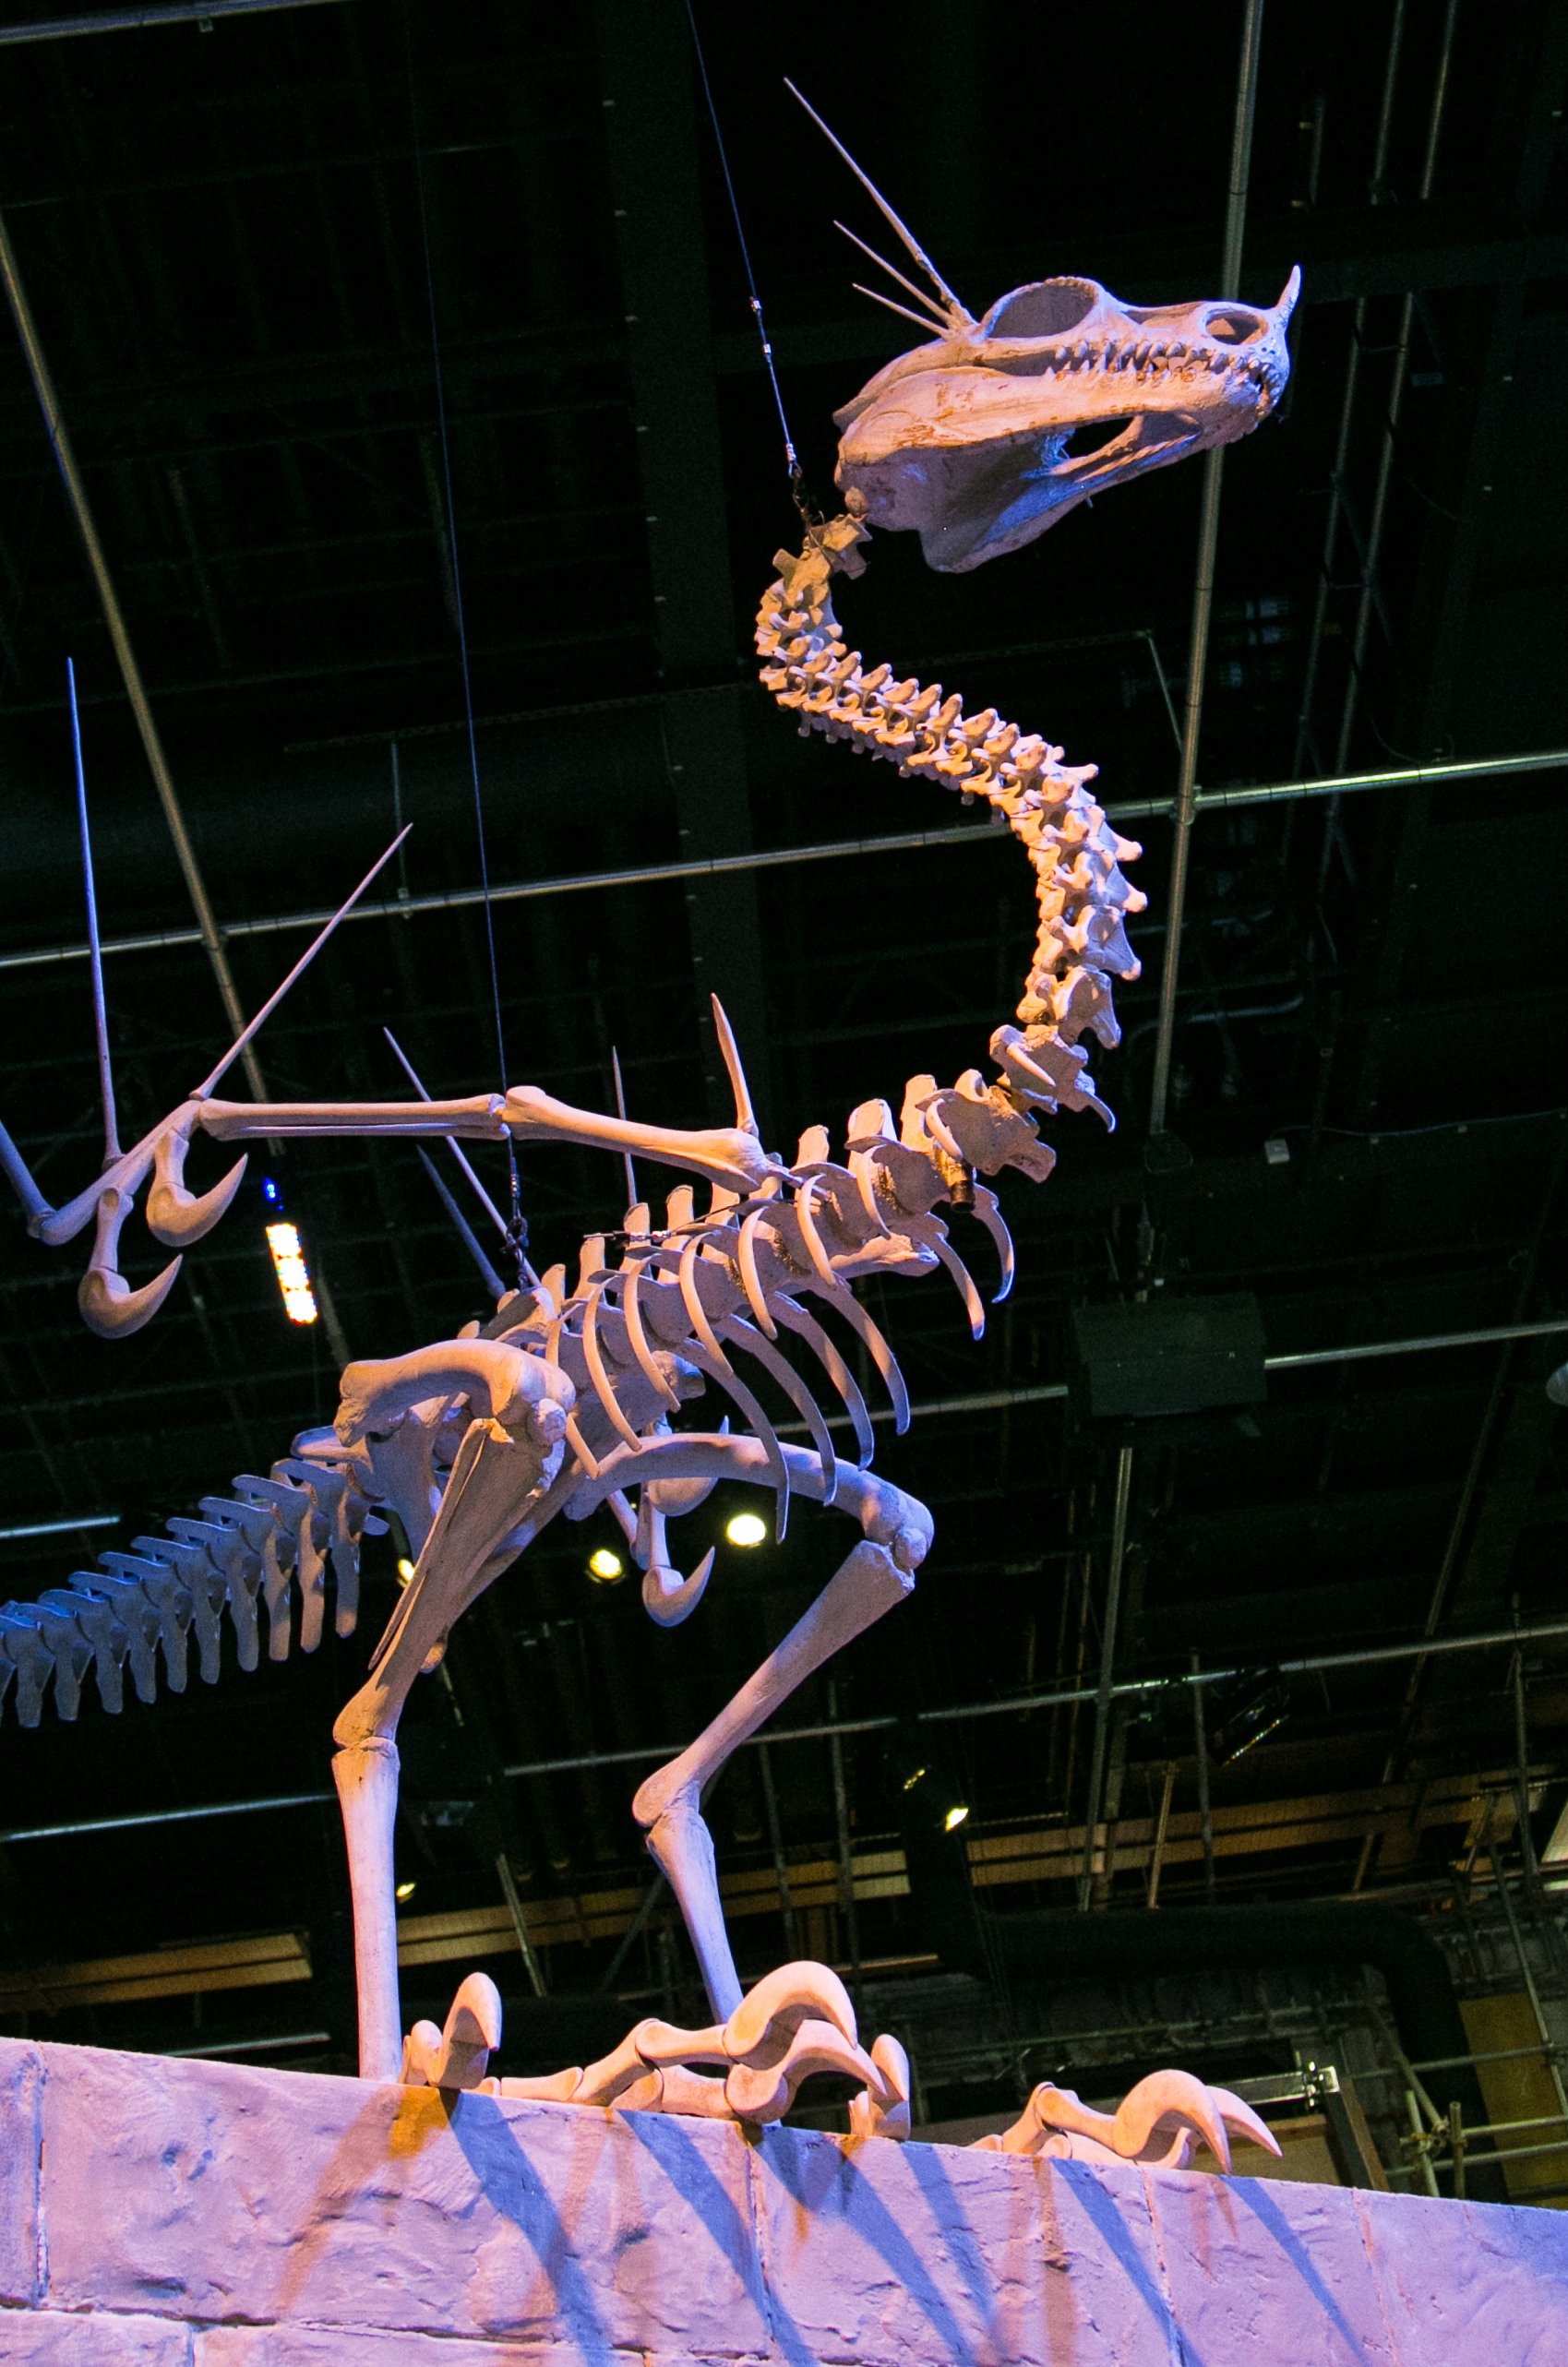 harry-potter-studio-tour-dragon-skeleton